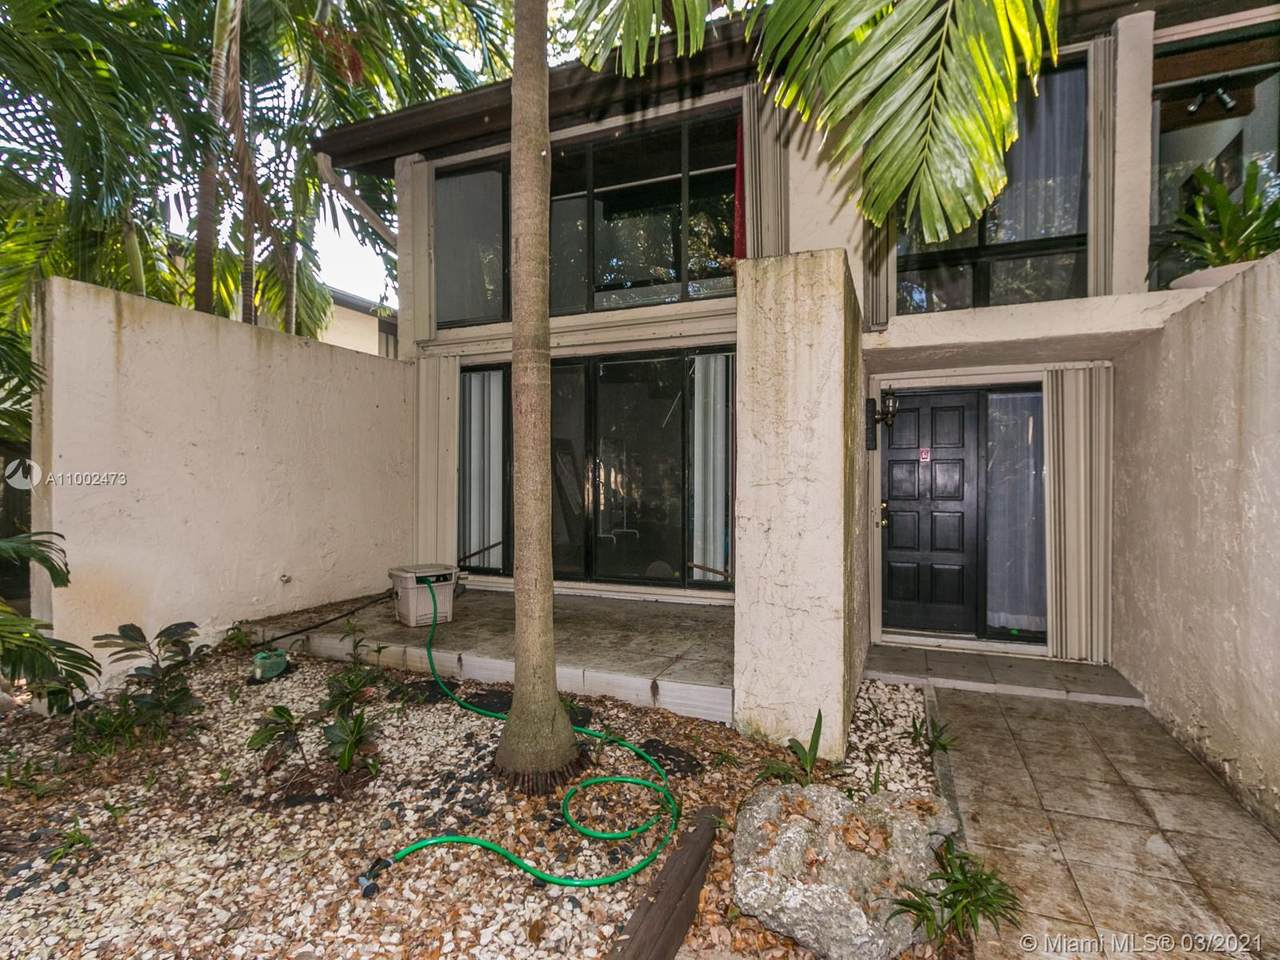 19420 26th Ave - Photo 1